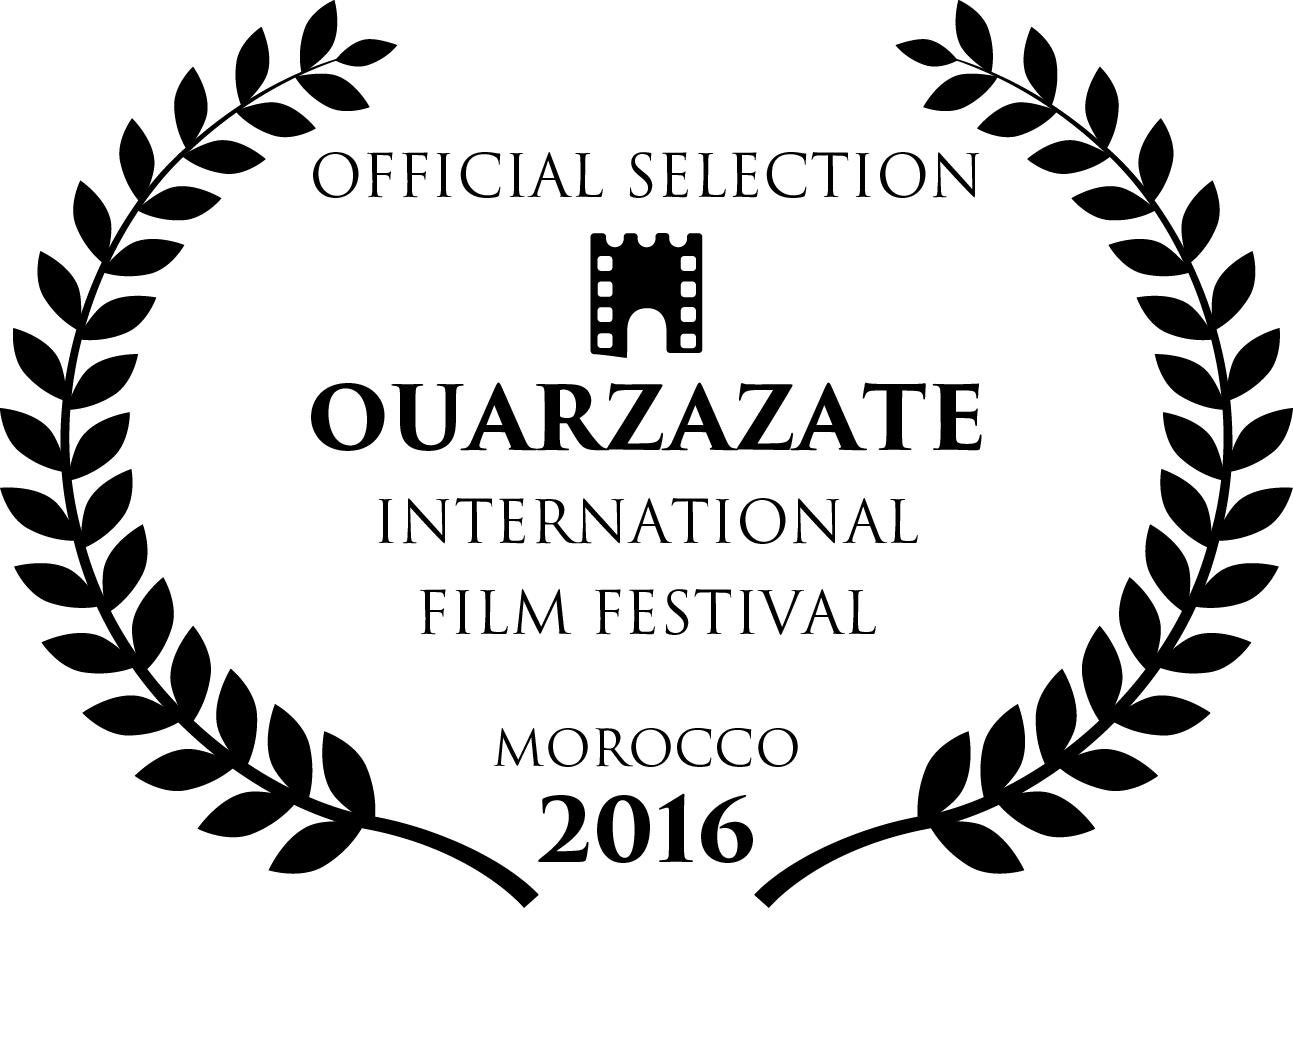 Selection OIFF2016-BLACK (2).png